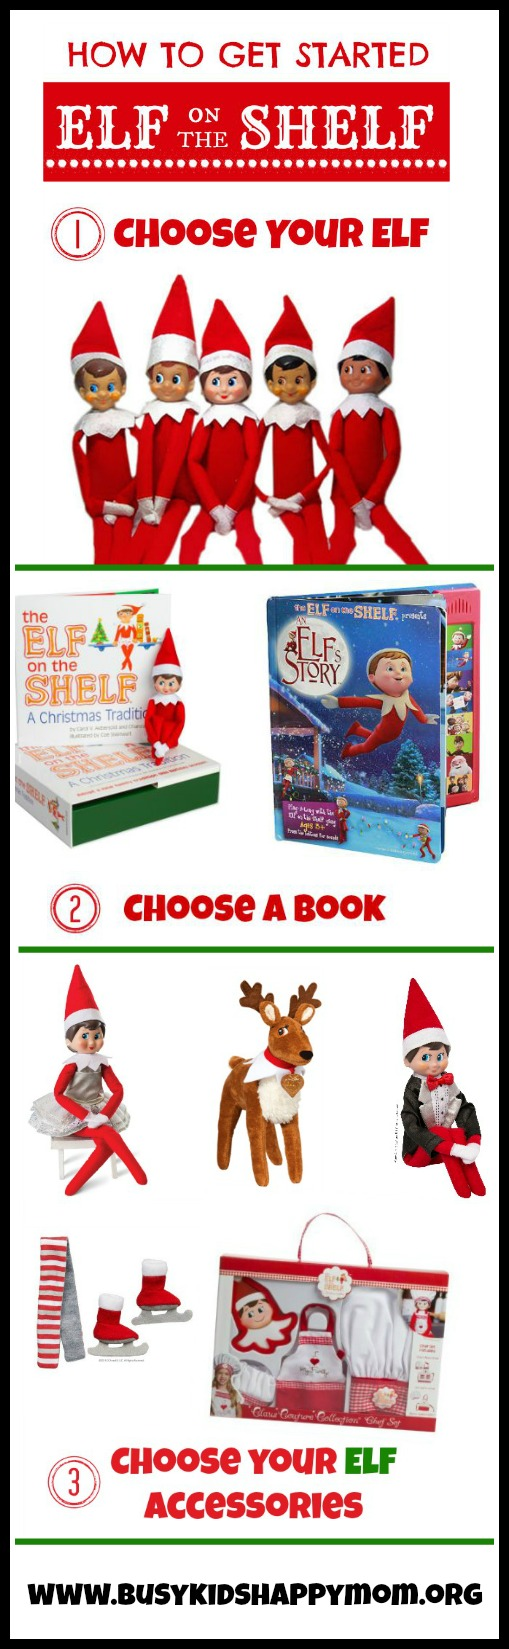 How to get started with your Elf on the Shelf